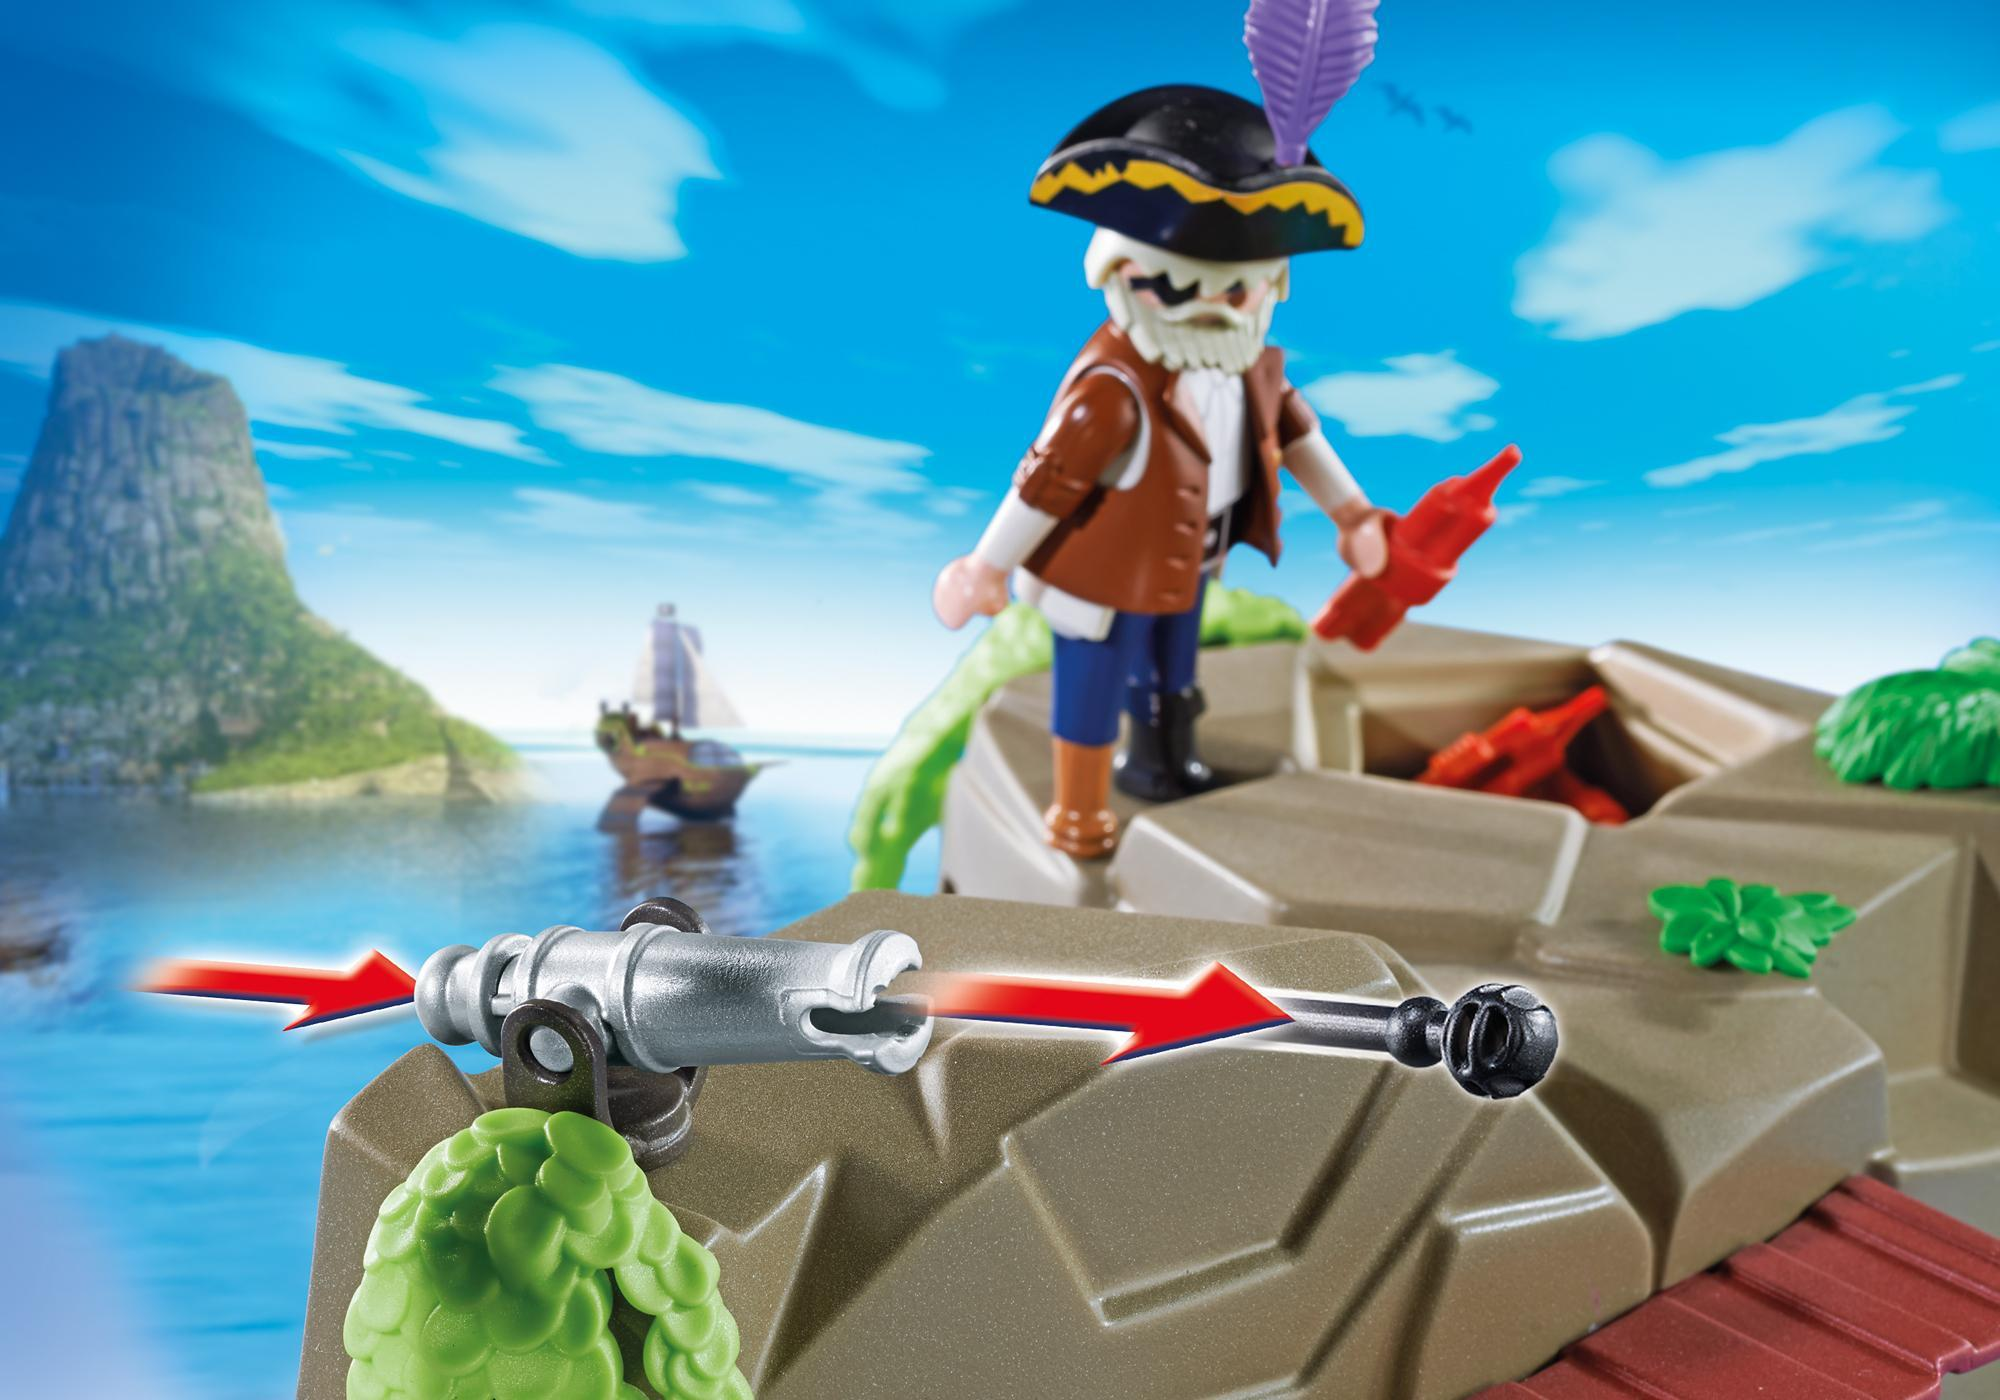 http://media.playmobil.com/i/playmobil/4797_product_extra2/Пищера Пирата